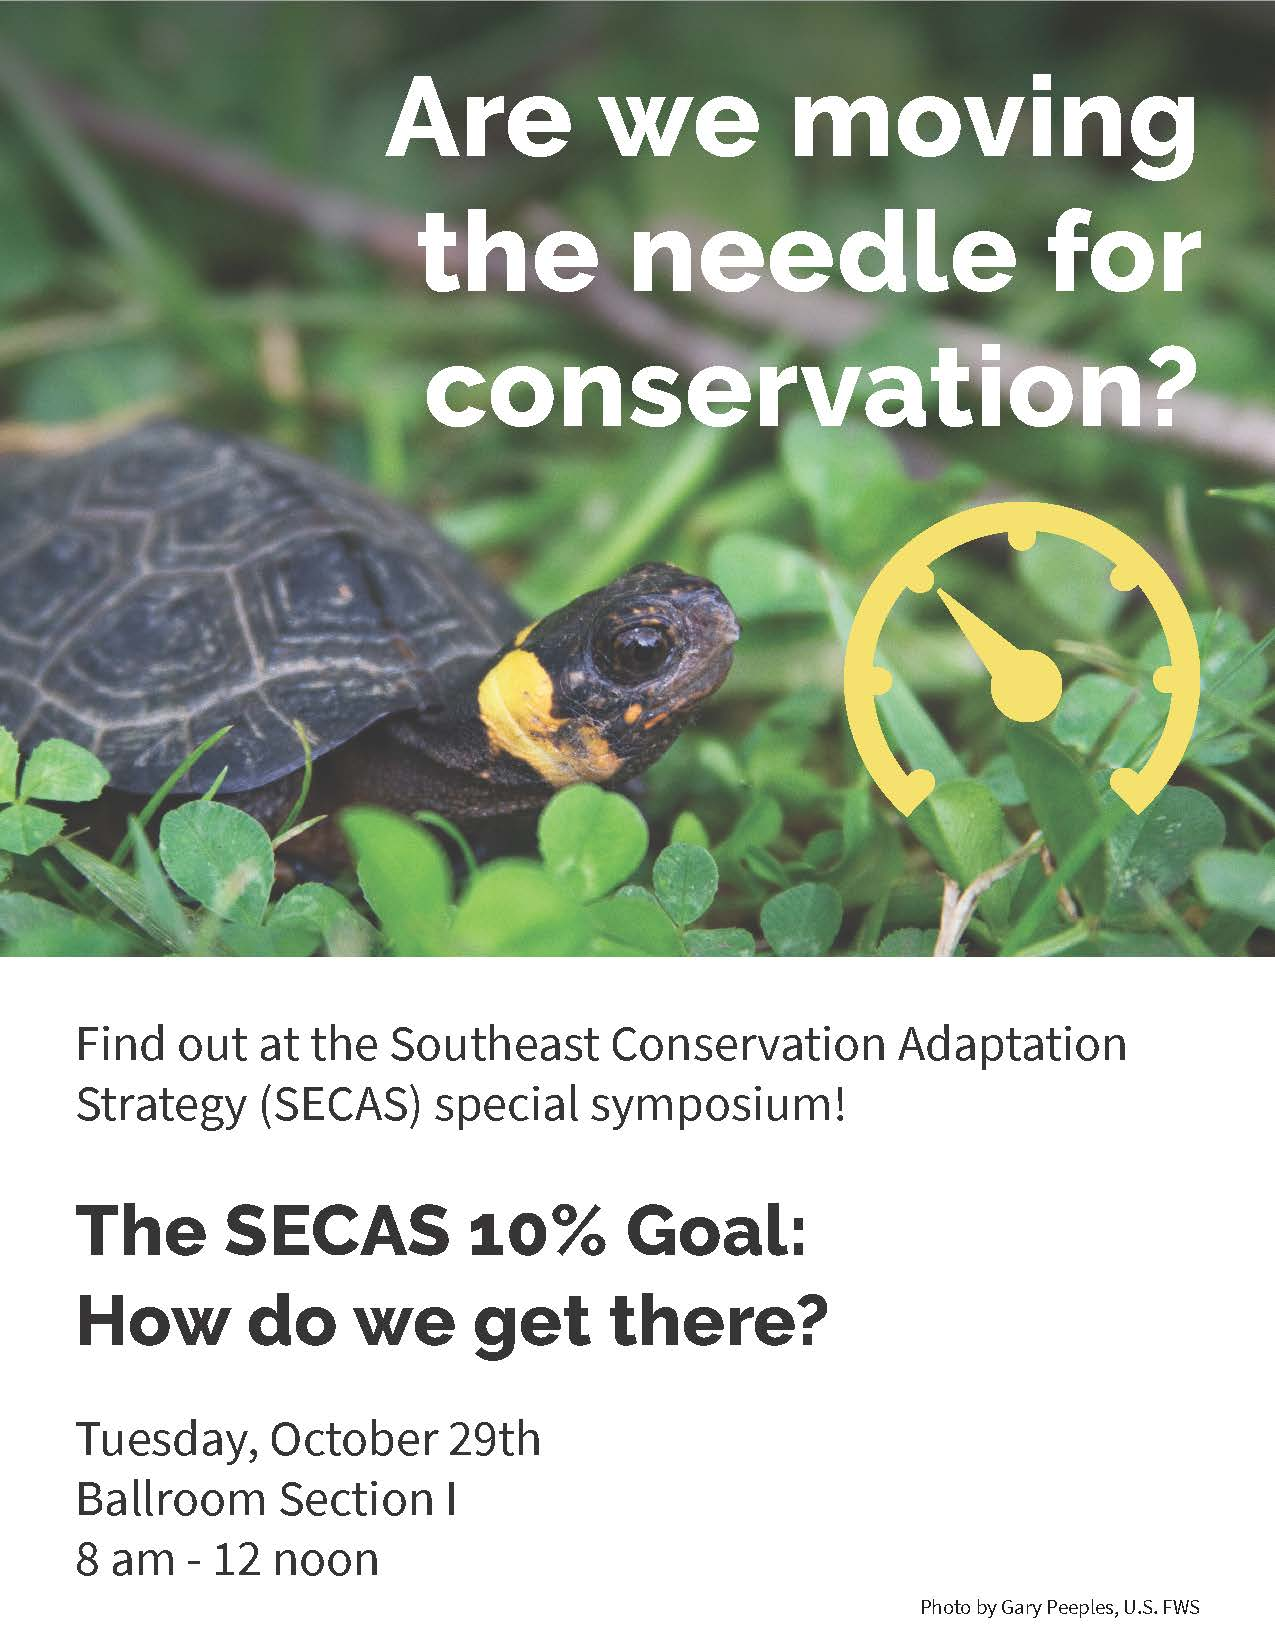 Flyer for SECAS symposium at 2019 SEAFWA annual meeting.